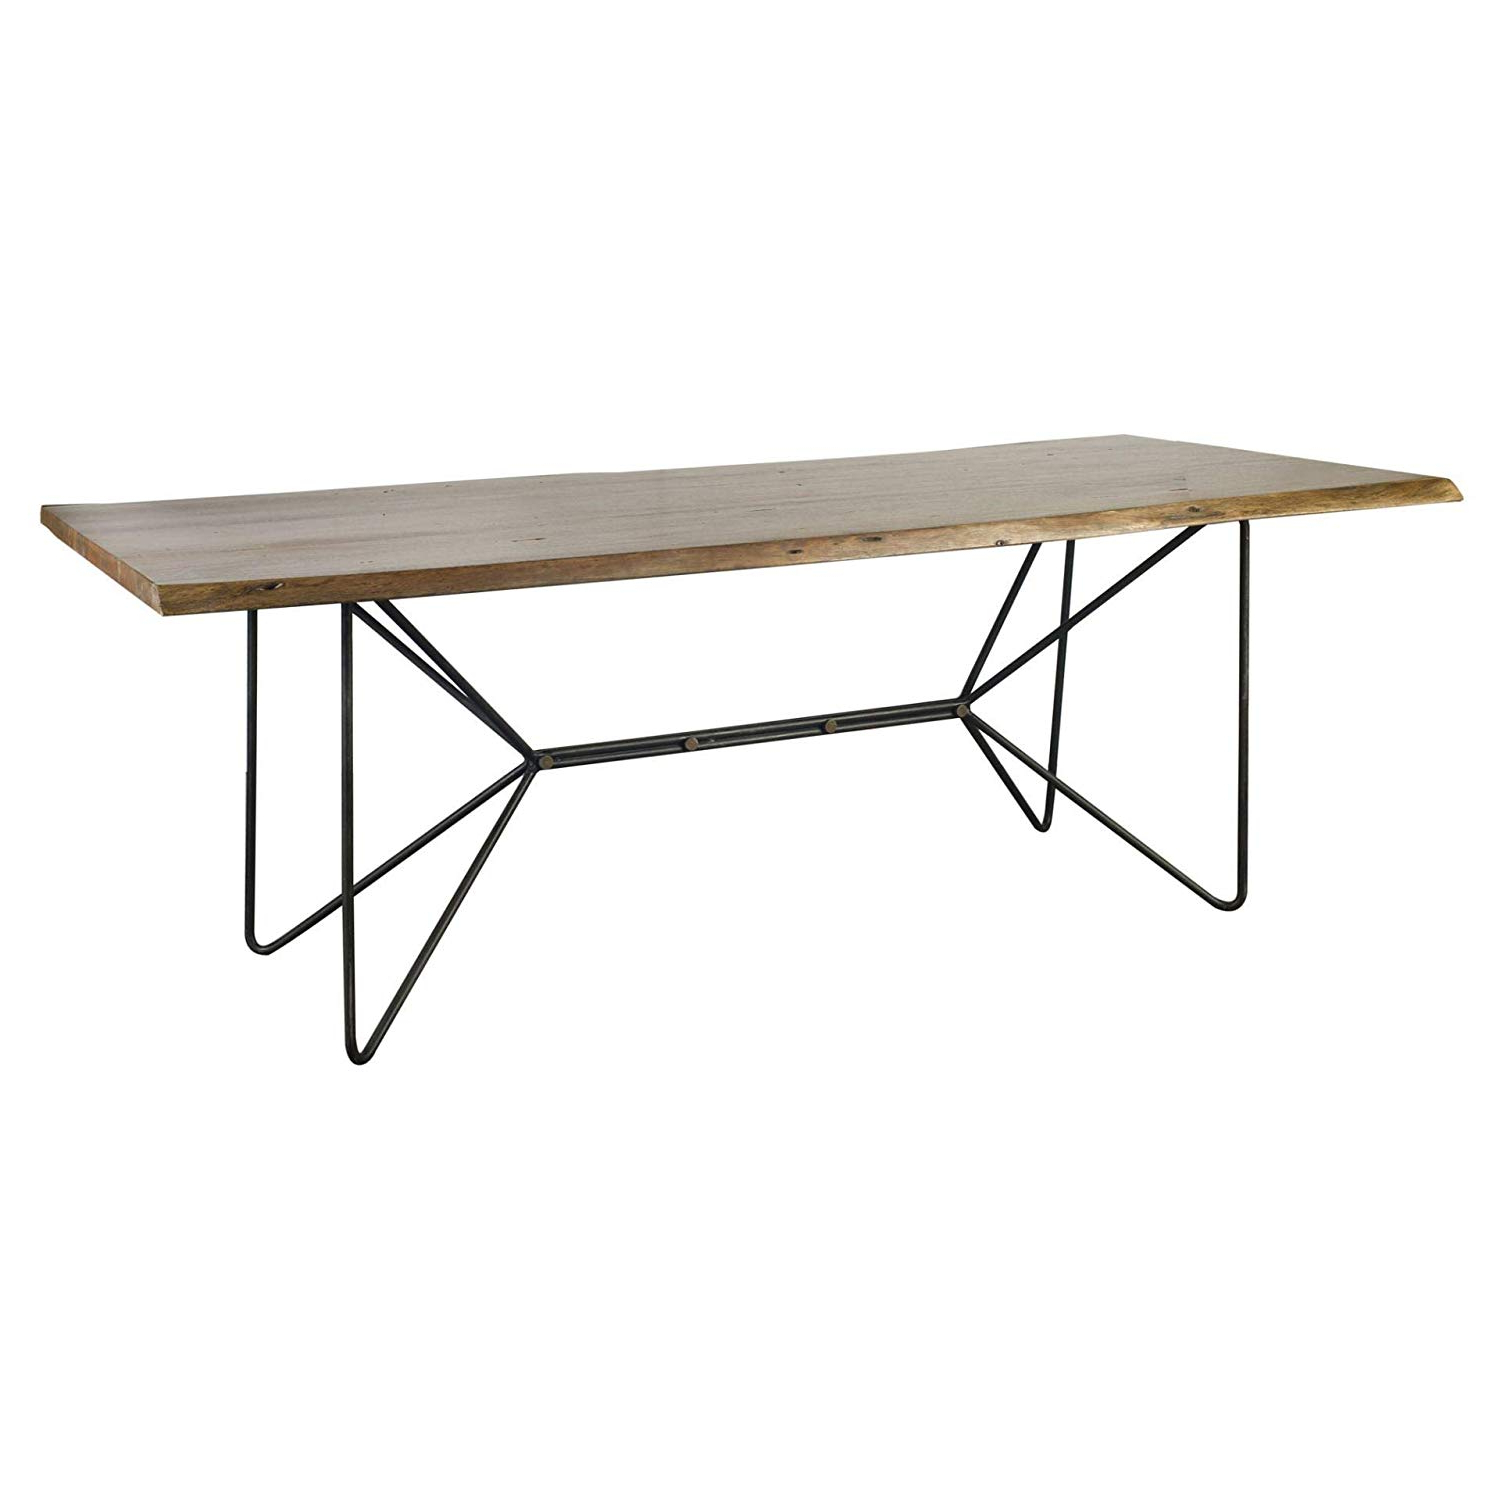 """Widely Used Acacia Wood Dining Tables With Sheet Metal Base With Regard To Amazon: Mercana 67623 Ab Dining Table, 84"""" X 38"""" X  (View 23 of 25)"""